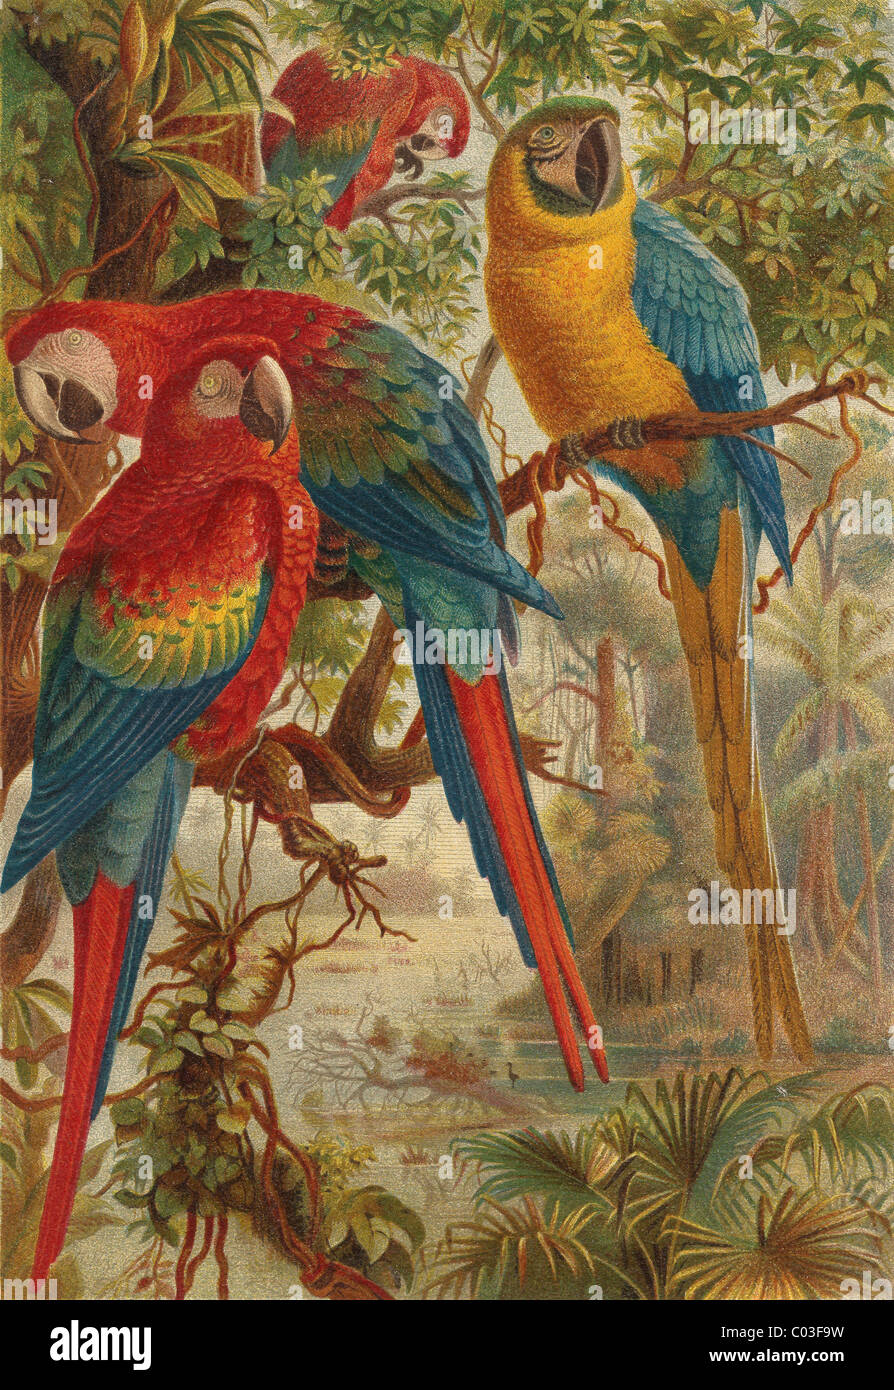 old lithography of colorful parrots - Stock Image